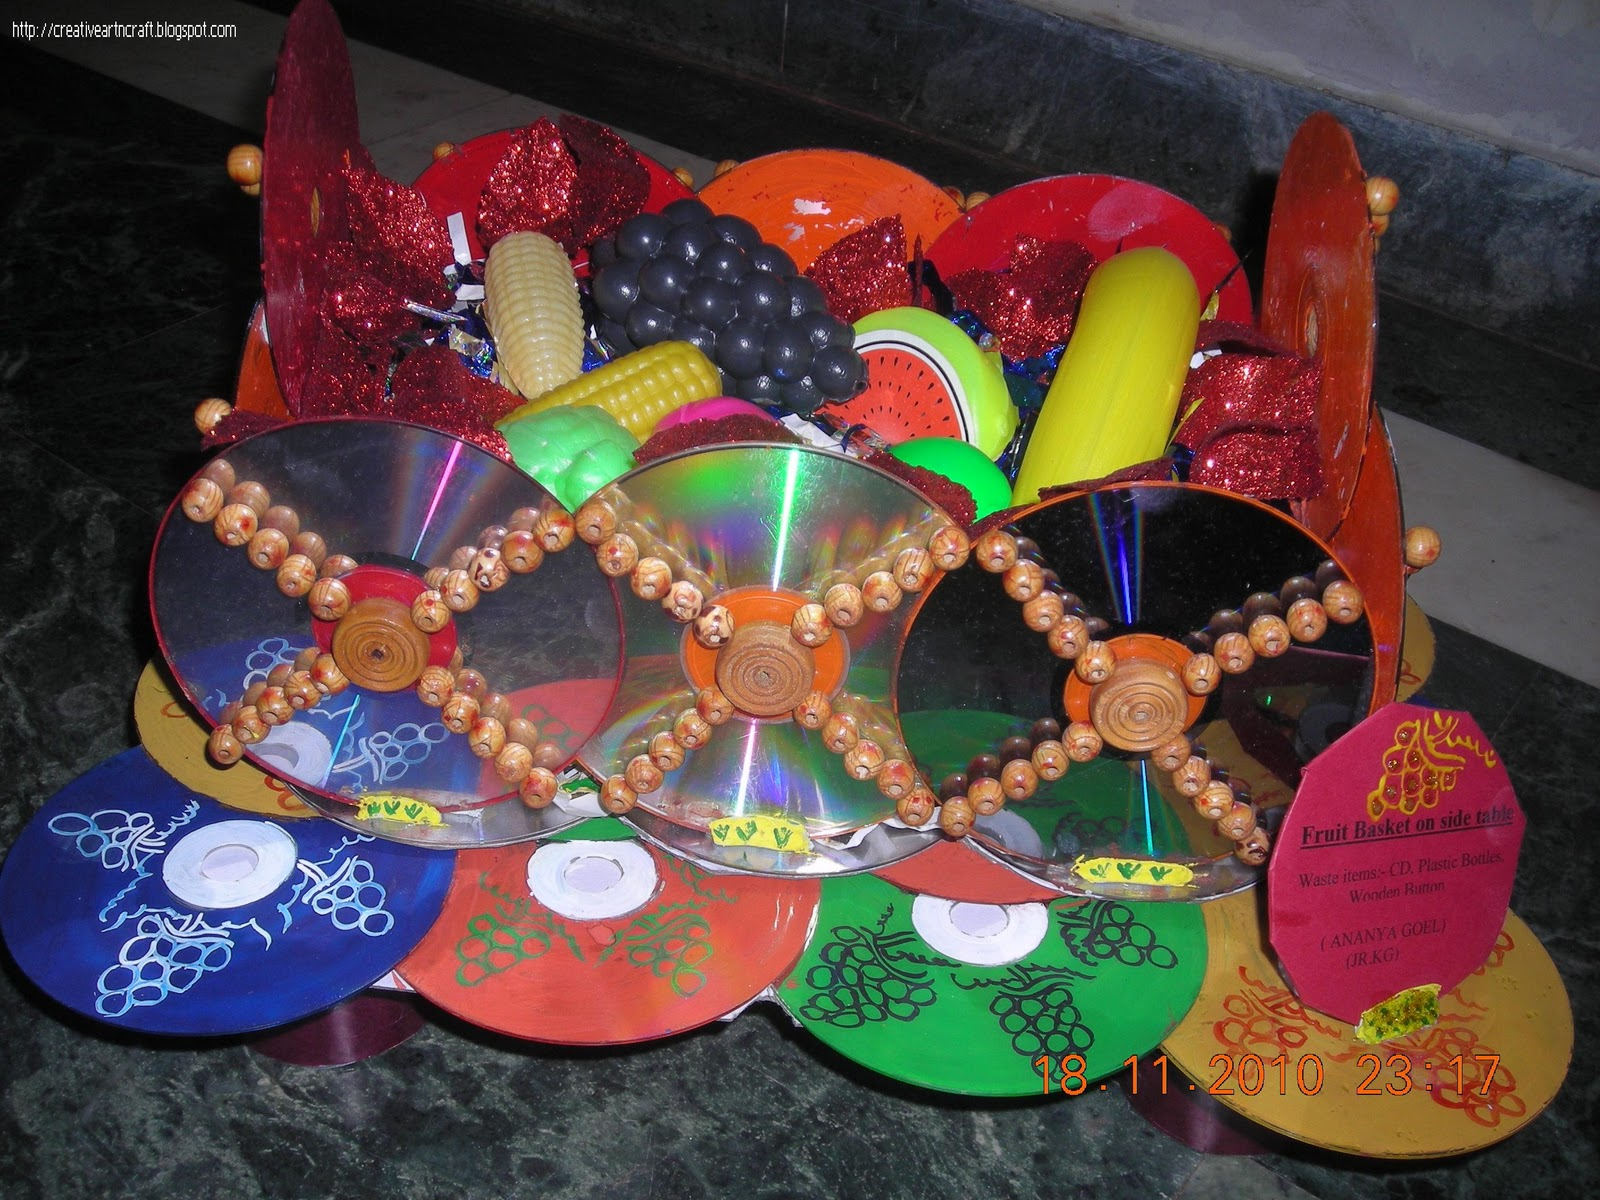 Anu 39 s art and crafts best out of waste fruit basket with for Useful things from waste